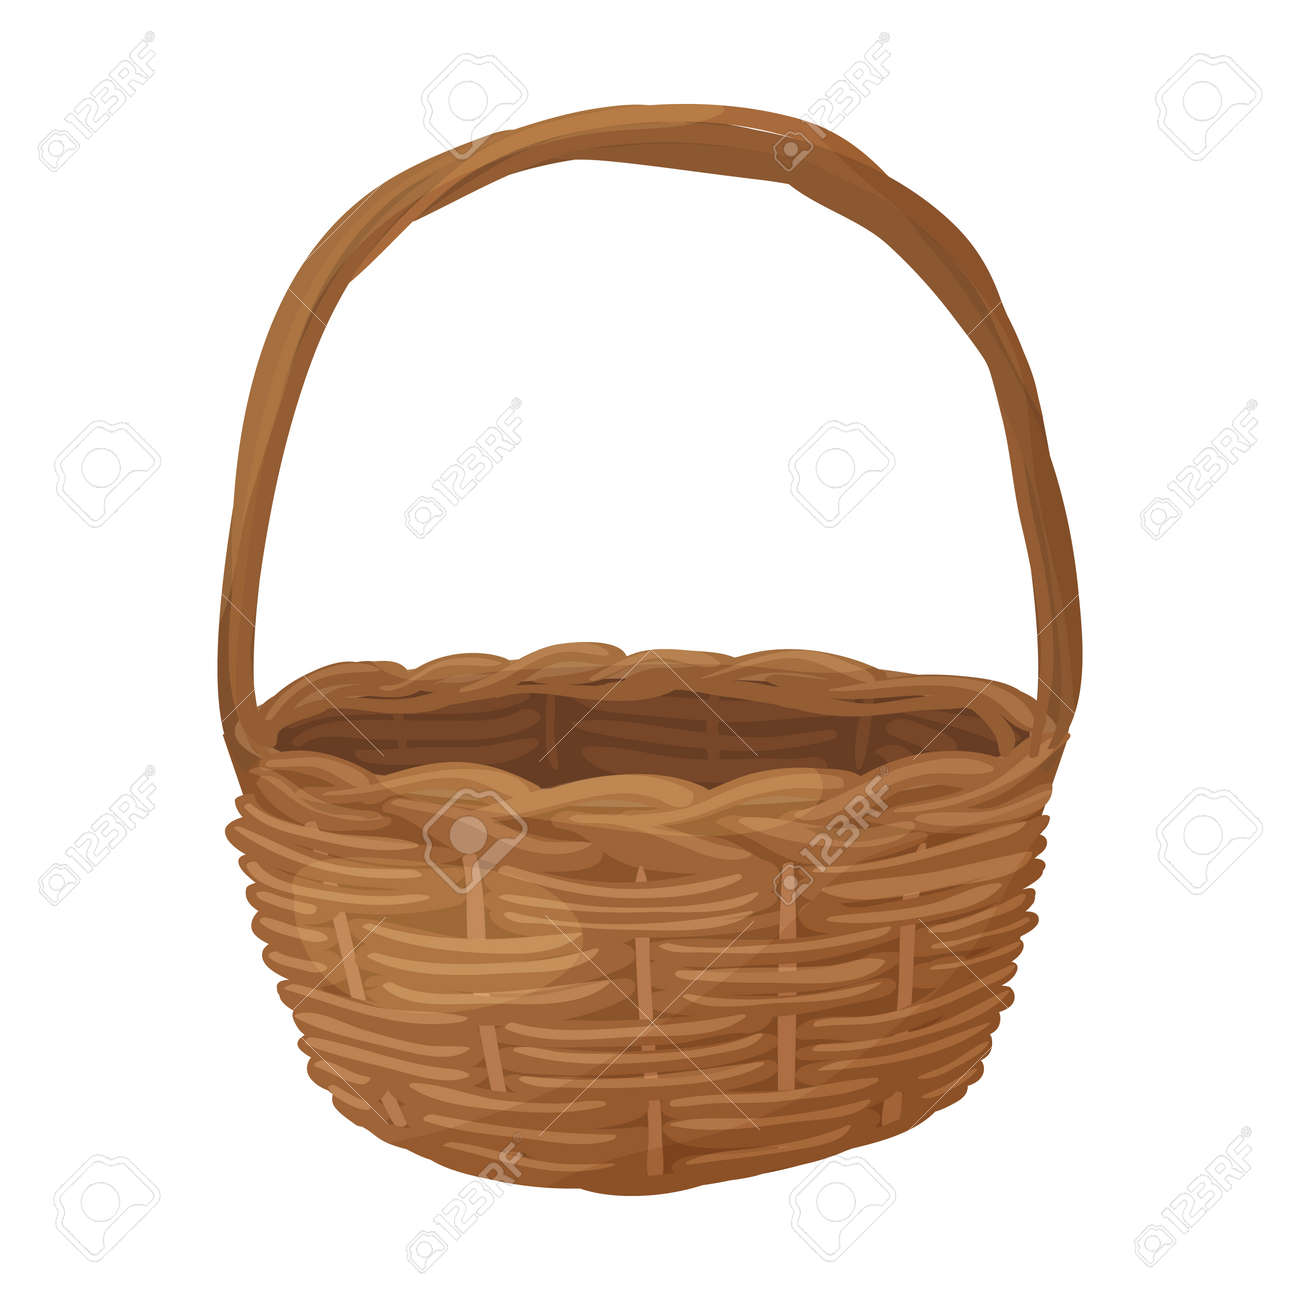 Wicker basket vector icon.Cartoon vector icon isolated on white background wicker basket. - 166572313